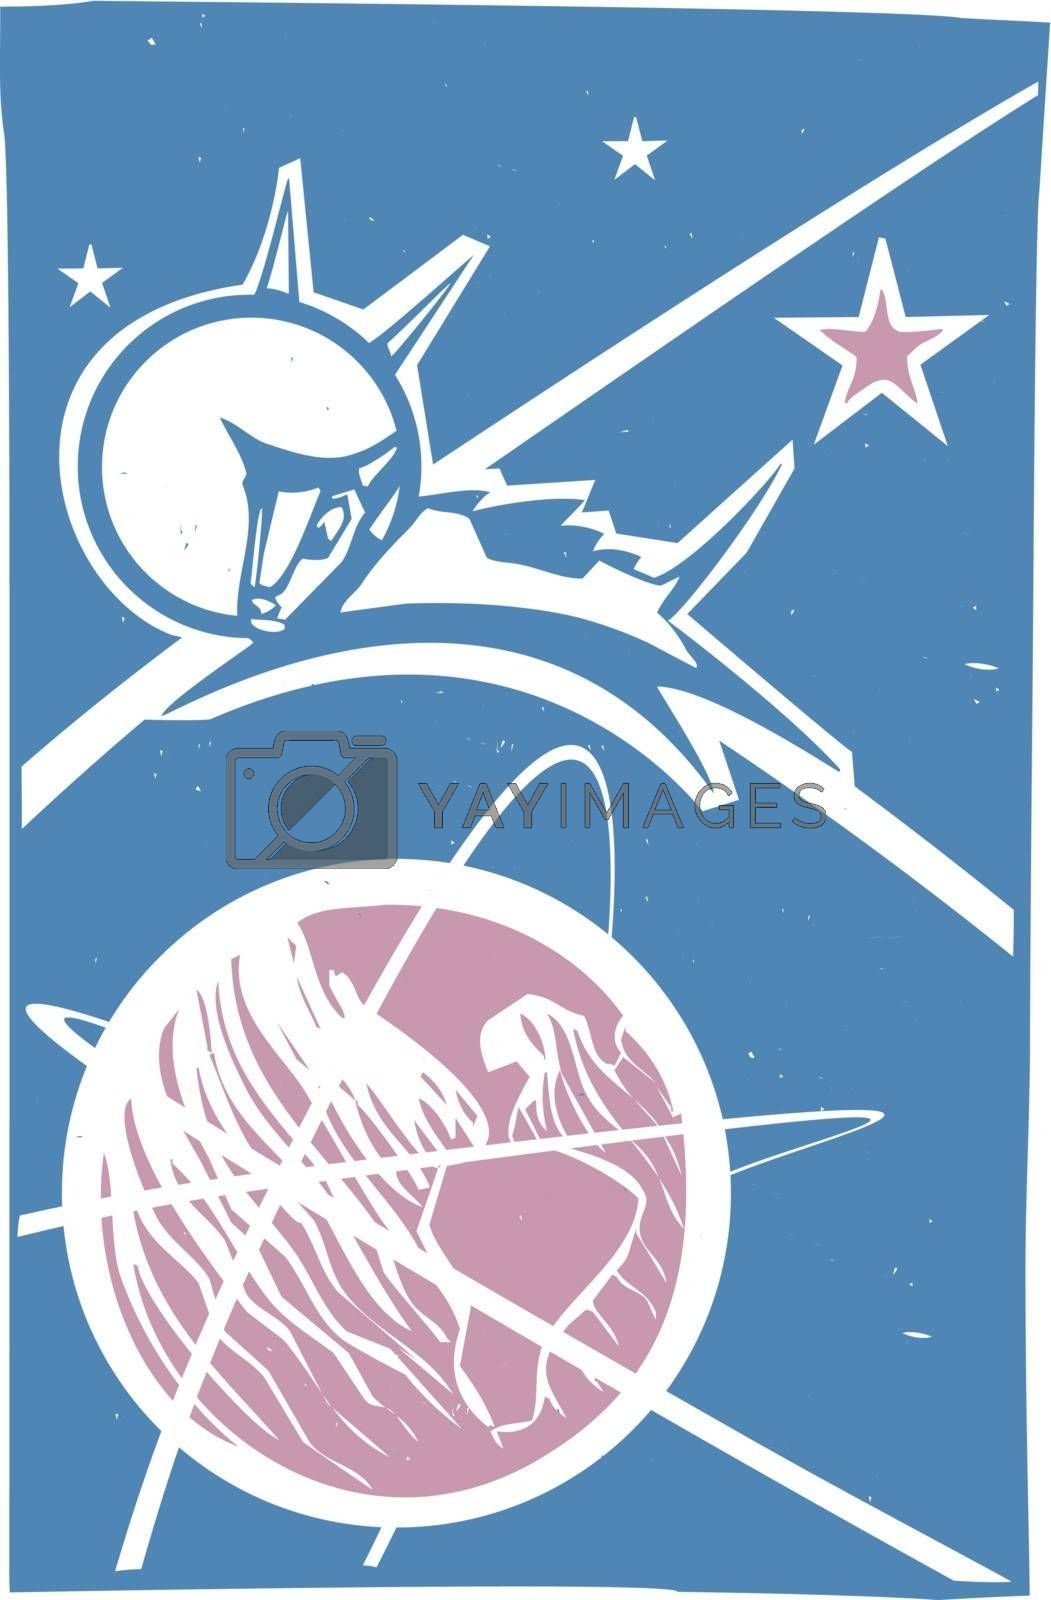 Soviet Poster style image of the Russian cosmonaut dog Laika orbiting the earth.